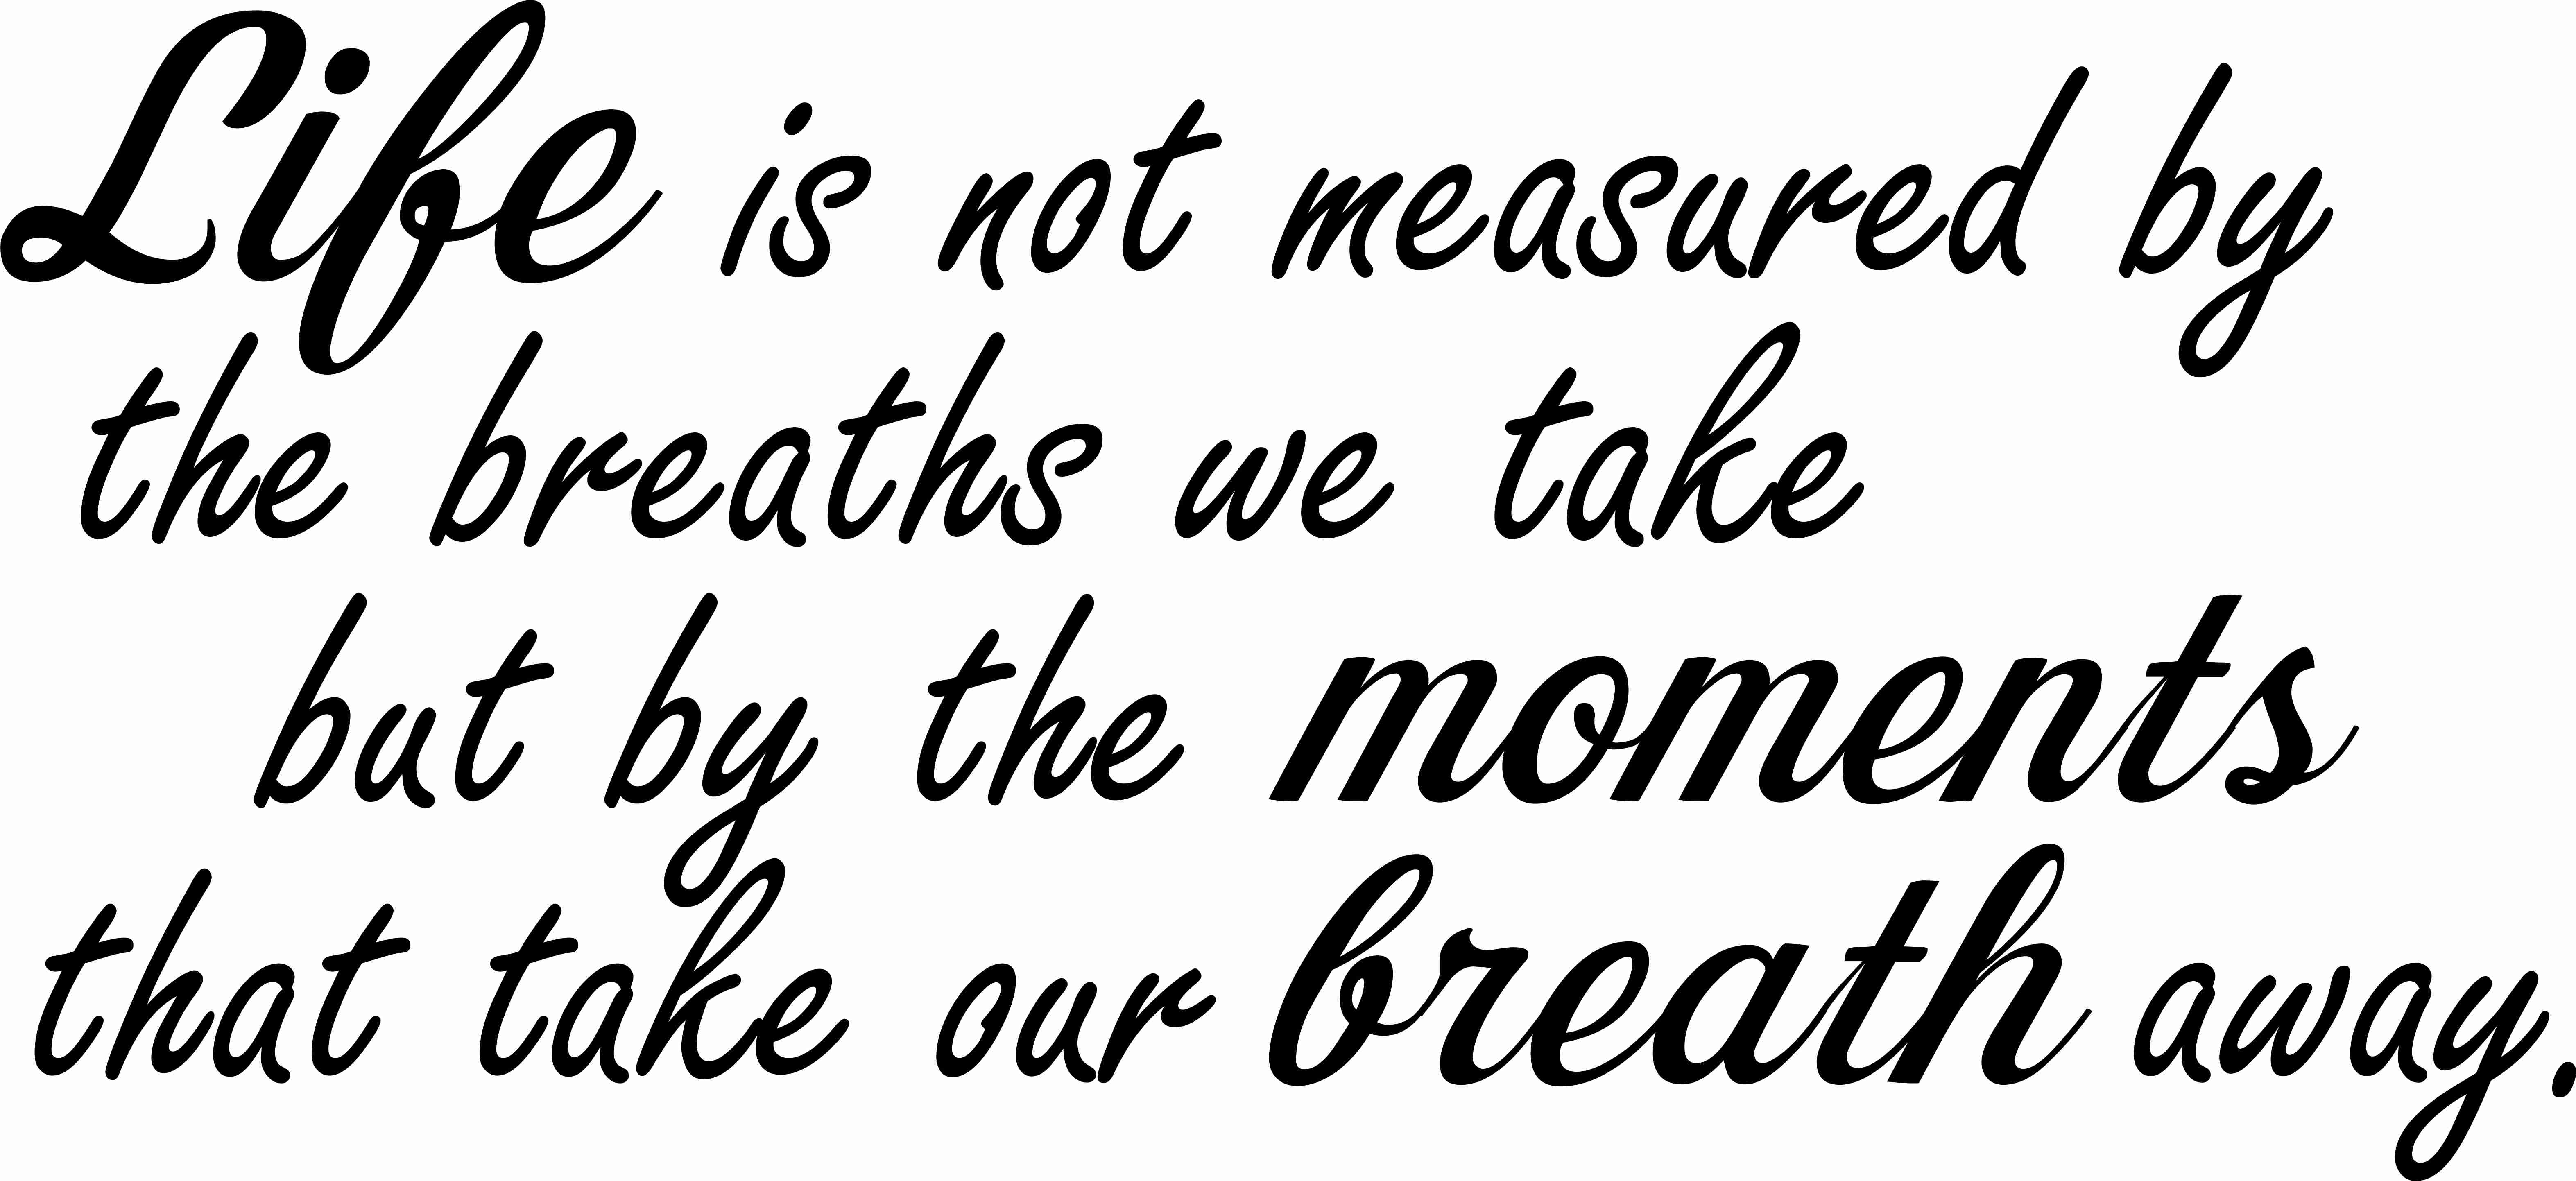 Life Is Not Measured Inspirational Vinyl Wall Decor